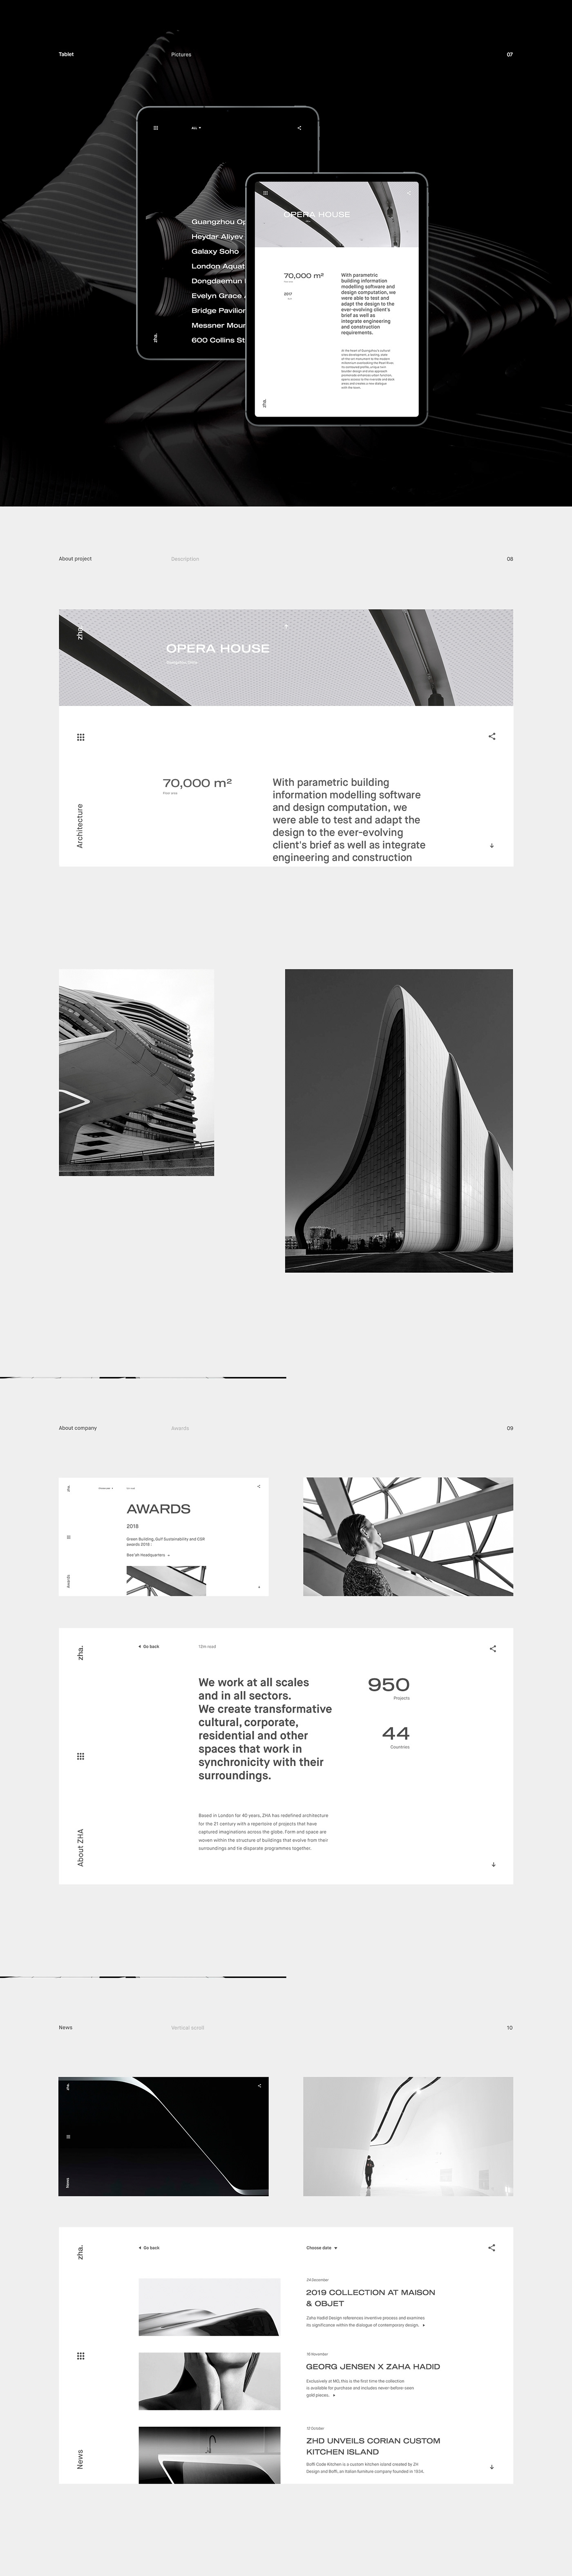 architecture Minimalism clean animation  grayscale business black and white Interface building motion